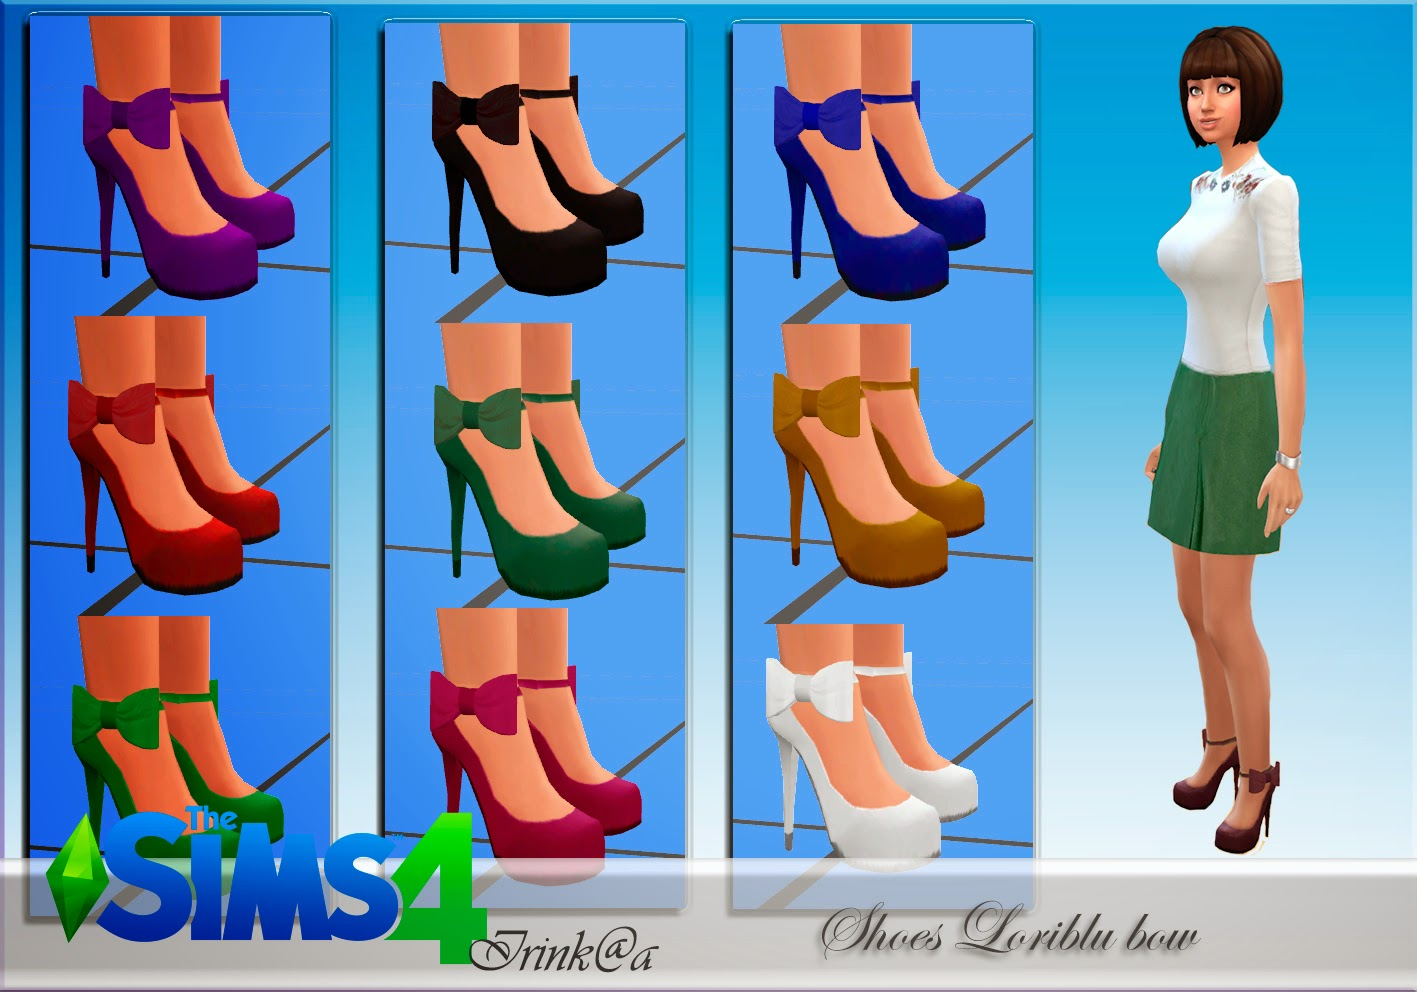 Shoes Loriblu bow by Irink@a